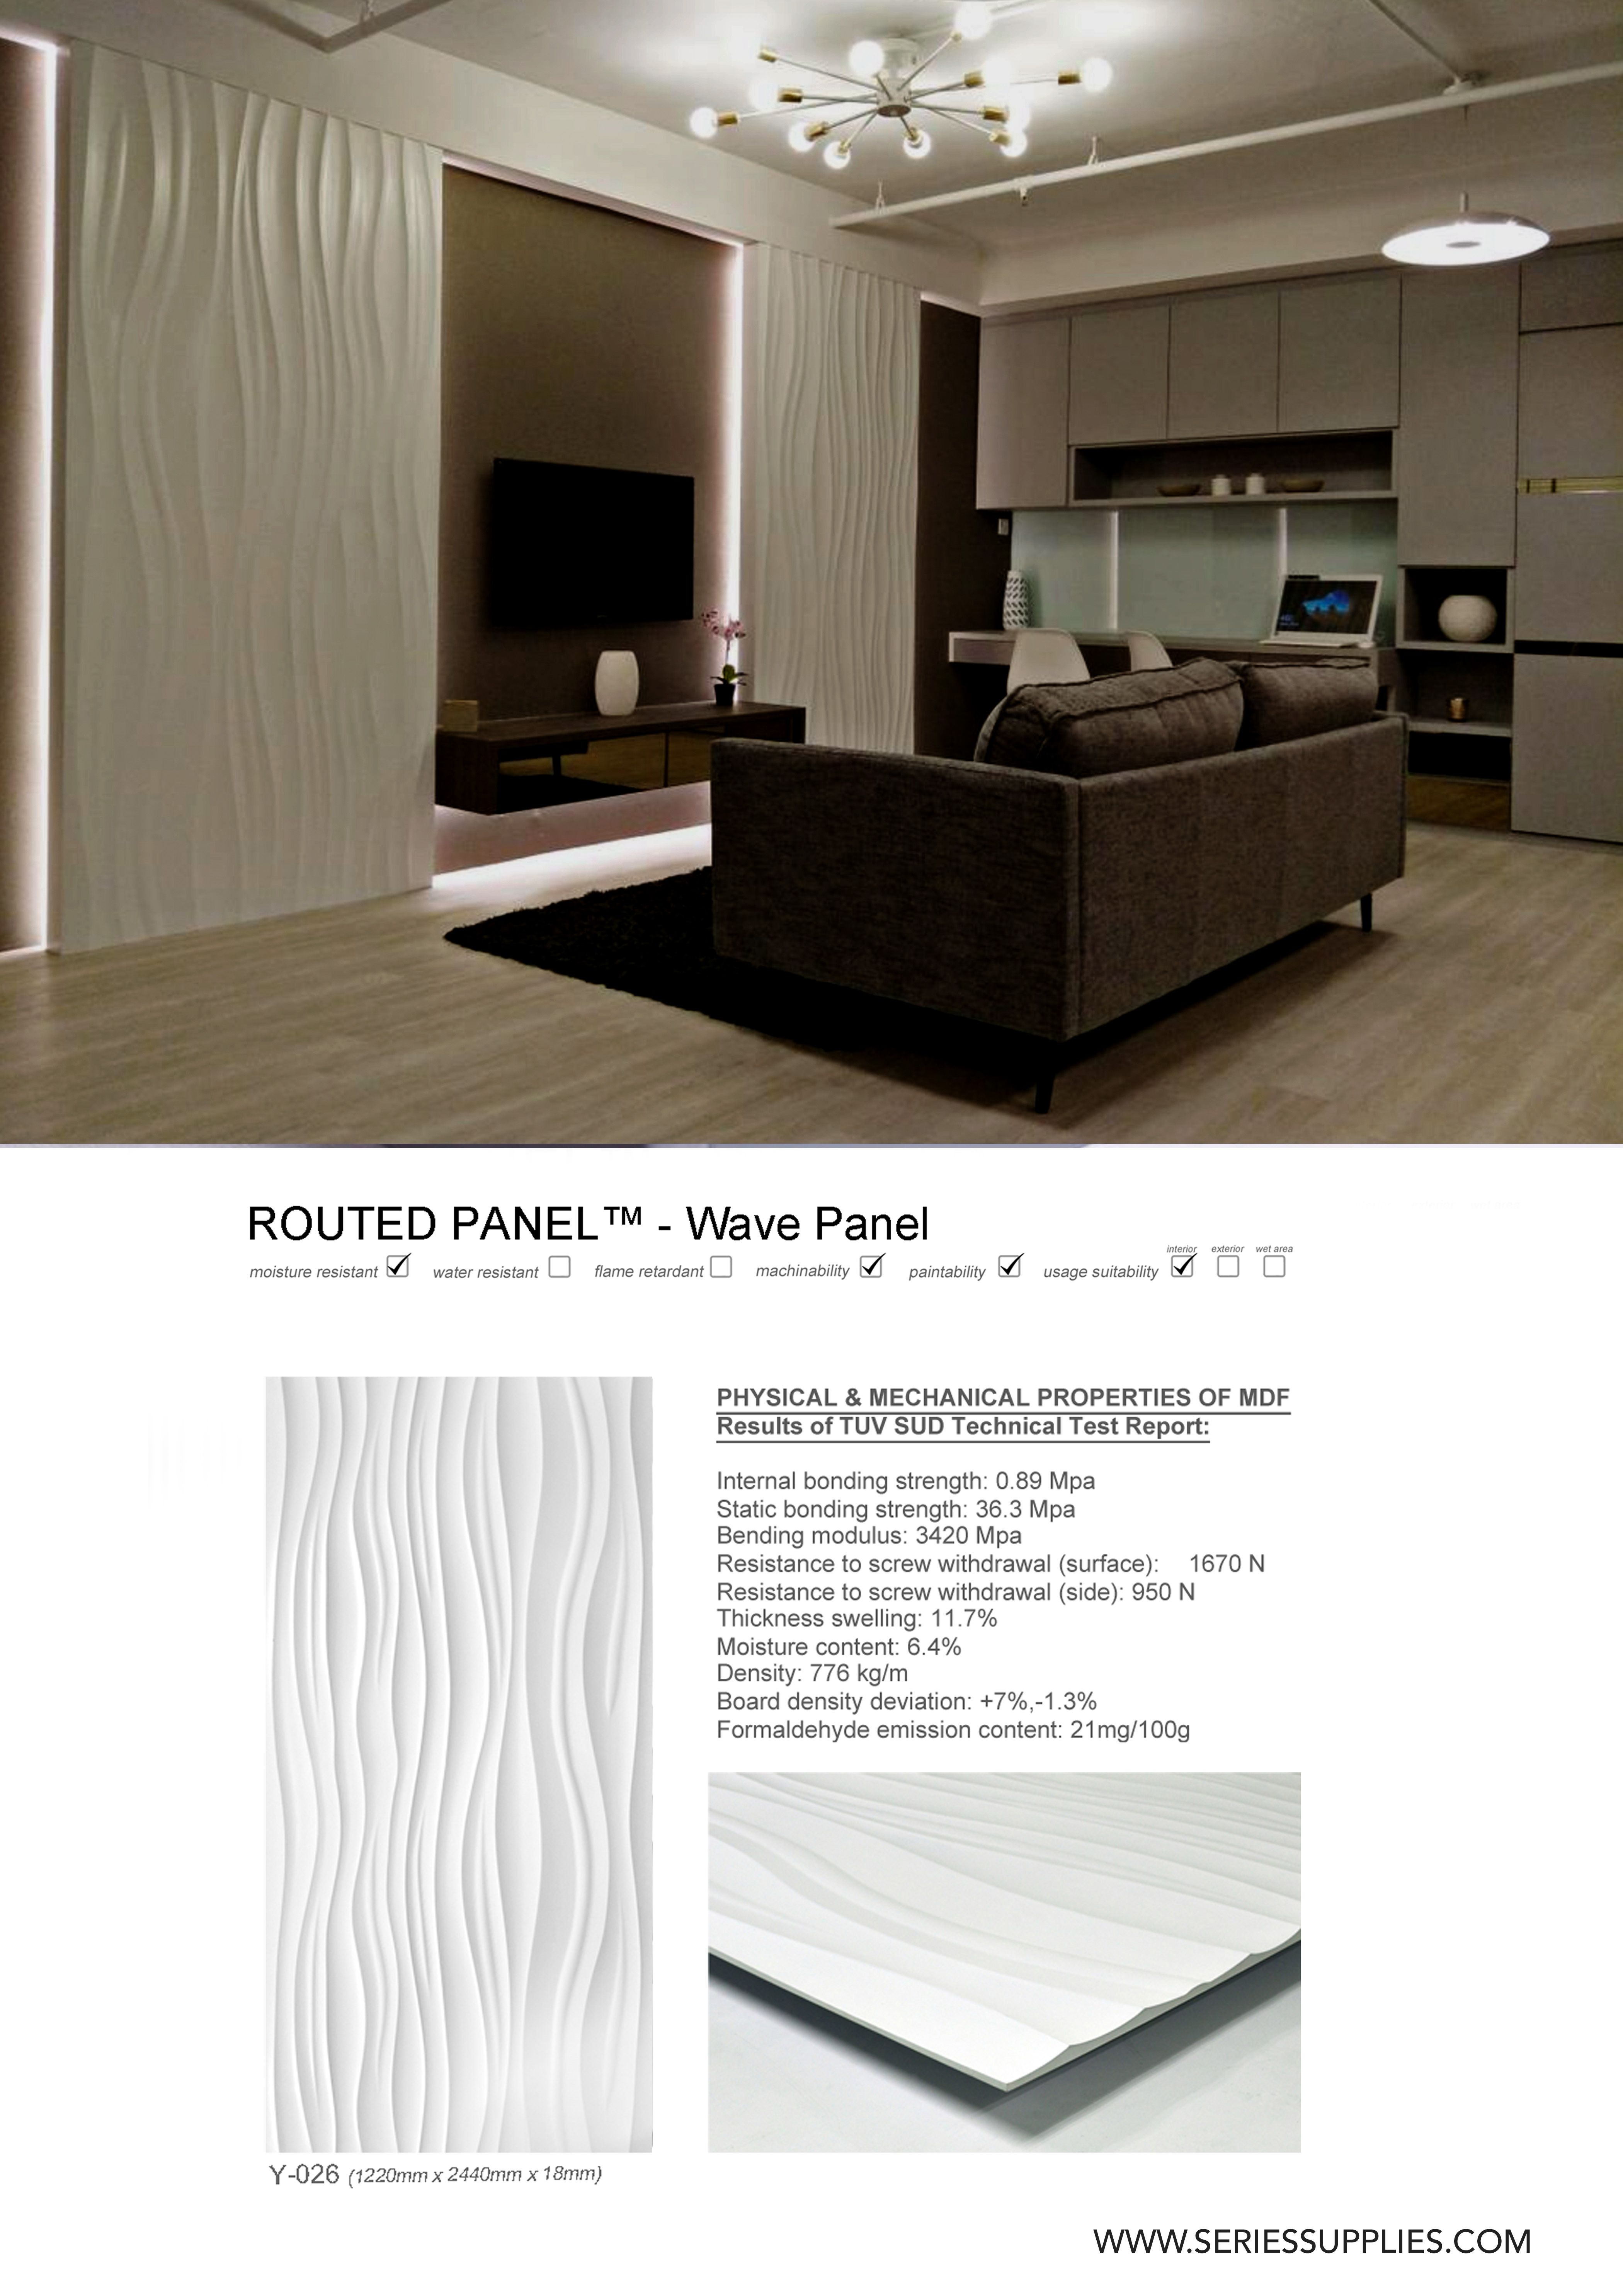 Wave Design Wall Panel In 2020 Wall Paneling Wall Design Paneling